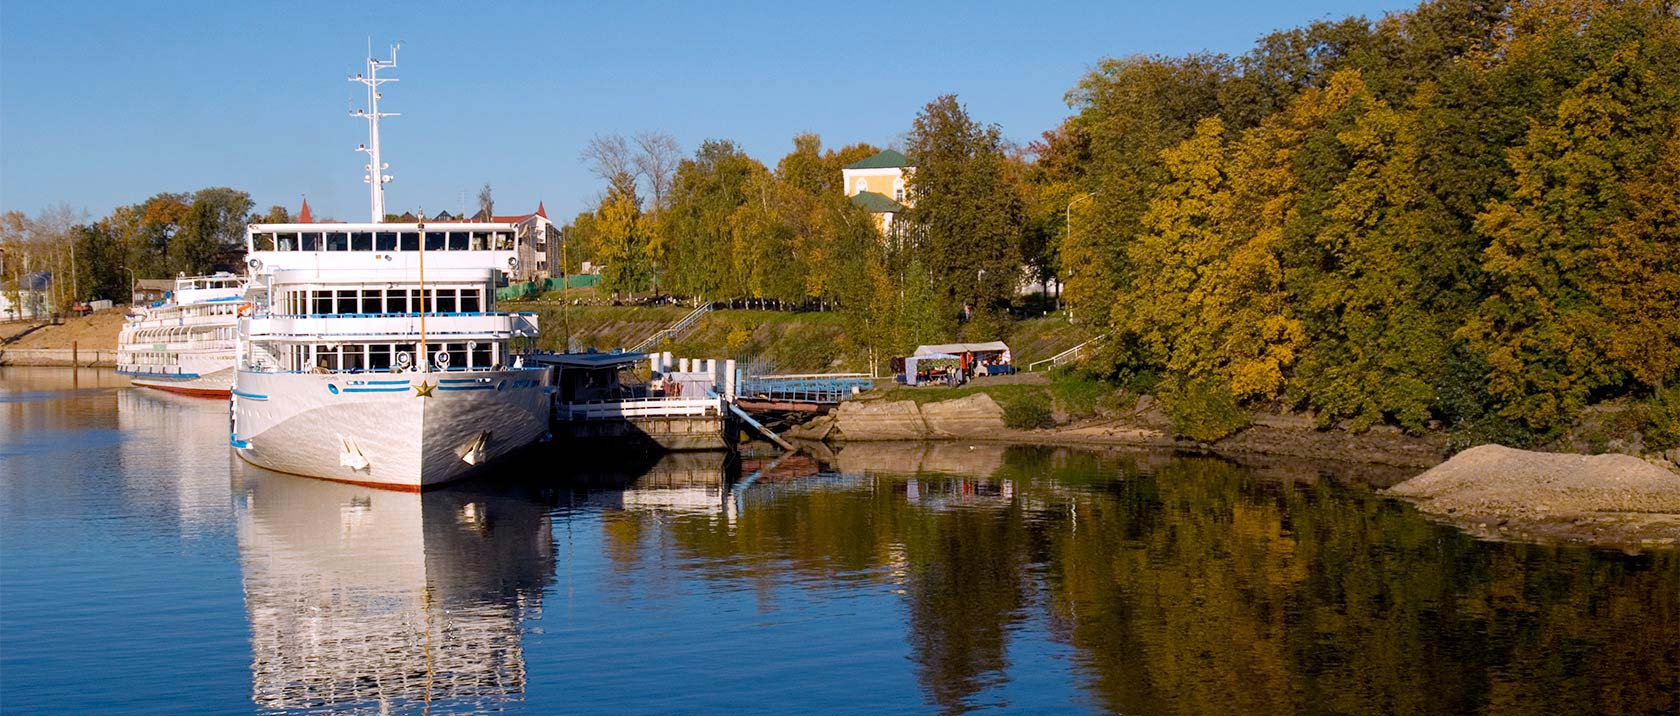 Viking Russia vessels docked in Uglich, Russia